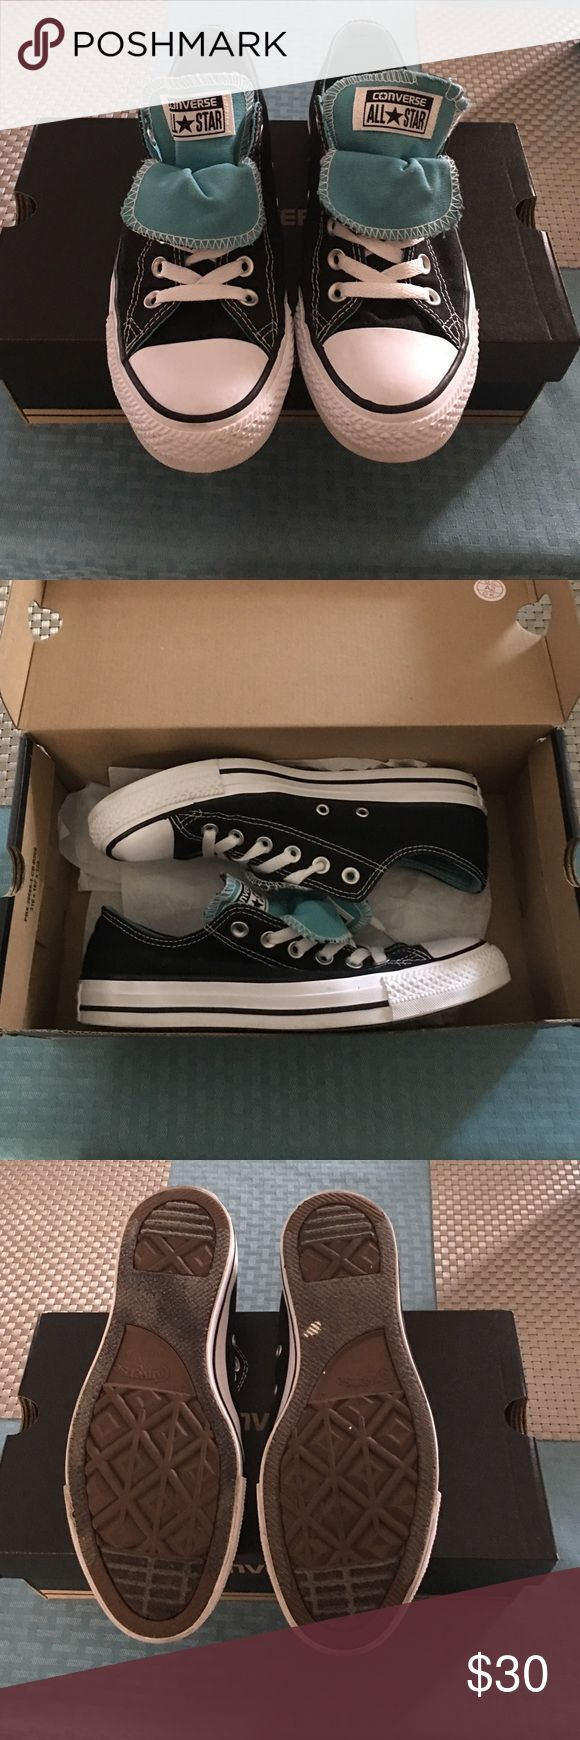 Converse double tongue shoes GREAT CONDITION! Black/white converse with Aqua/white double tongue. Only worn out once, other then that they've been in their box. In the first picture you can see the stitching is unraveling on right shoe and there is a small smudge on left. Converse Shoes Sneakers